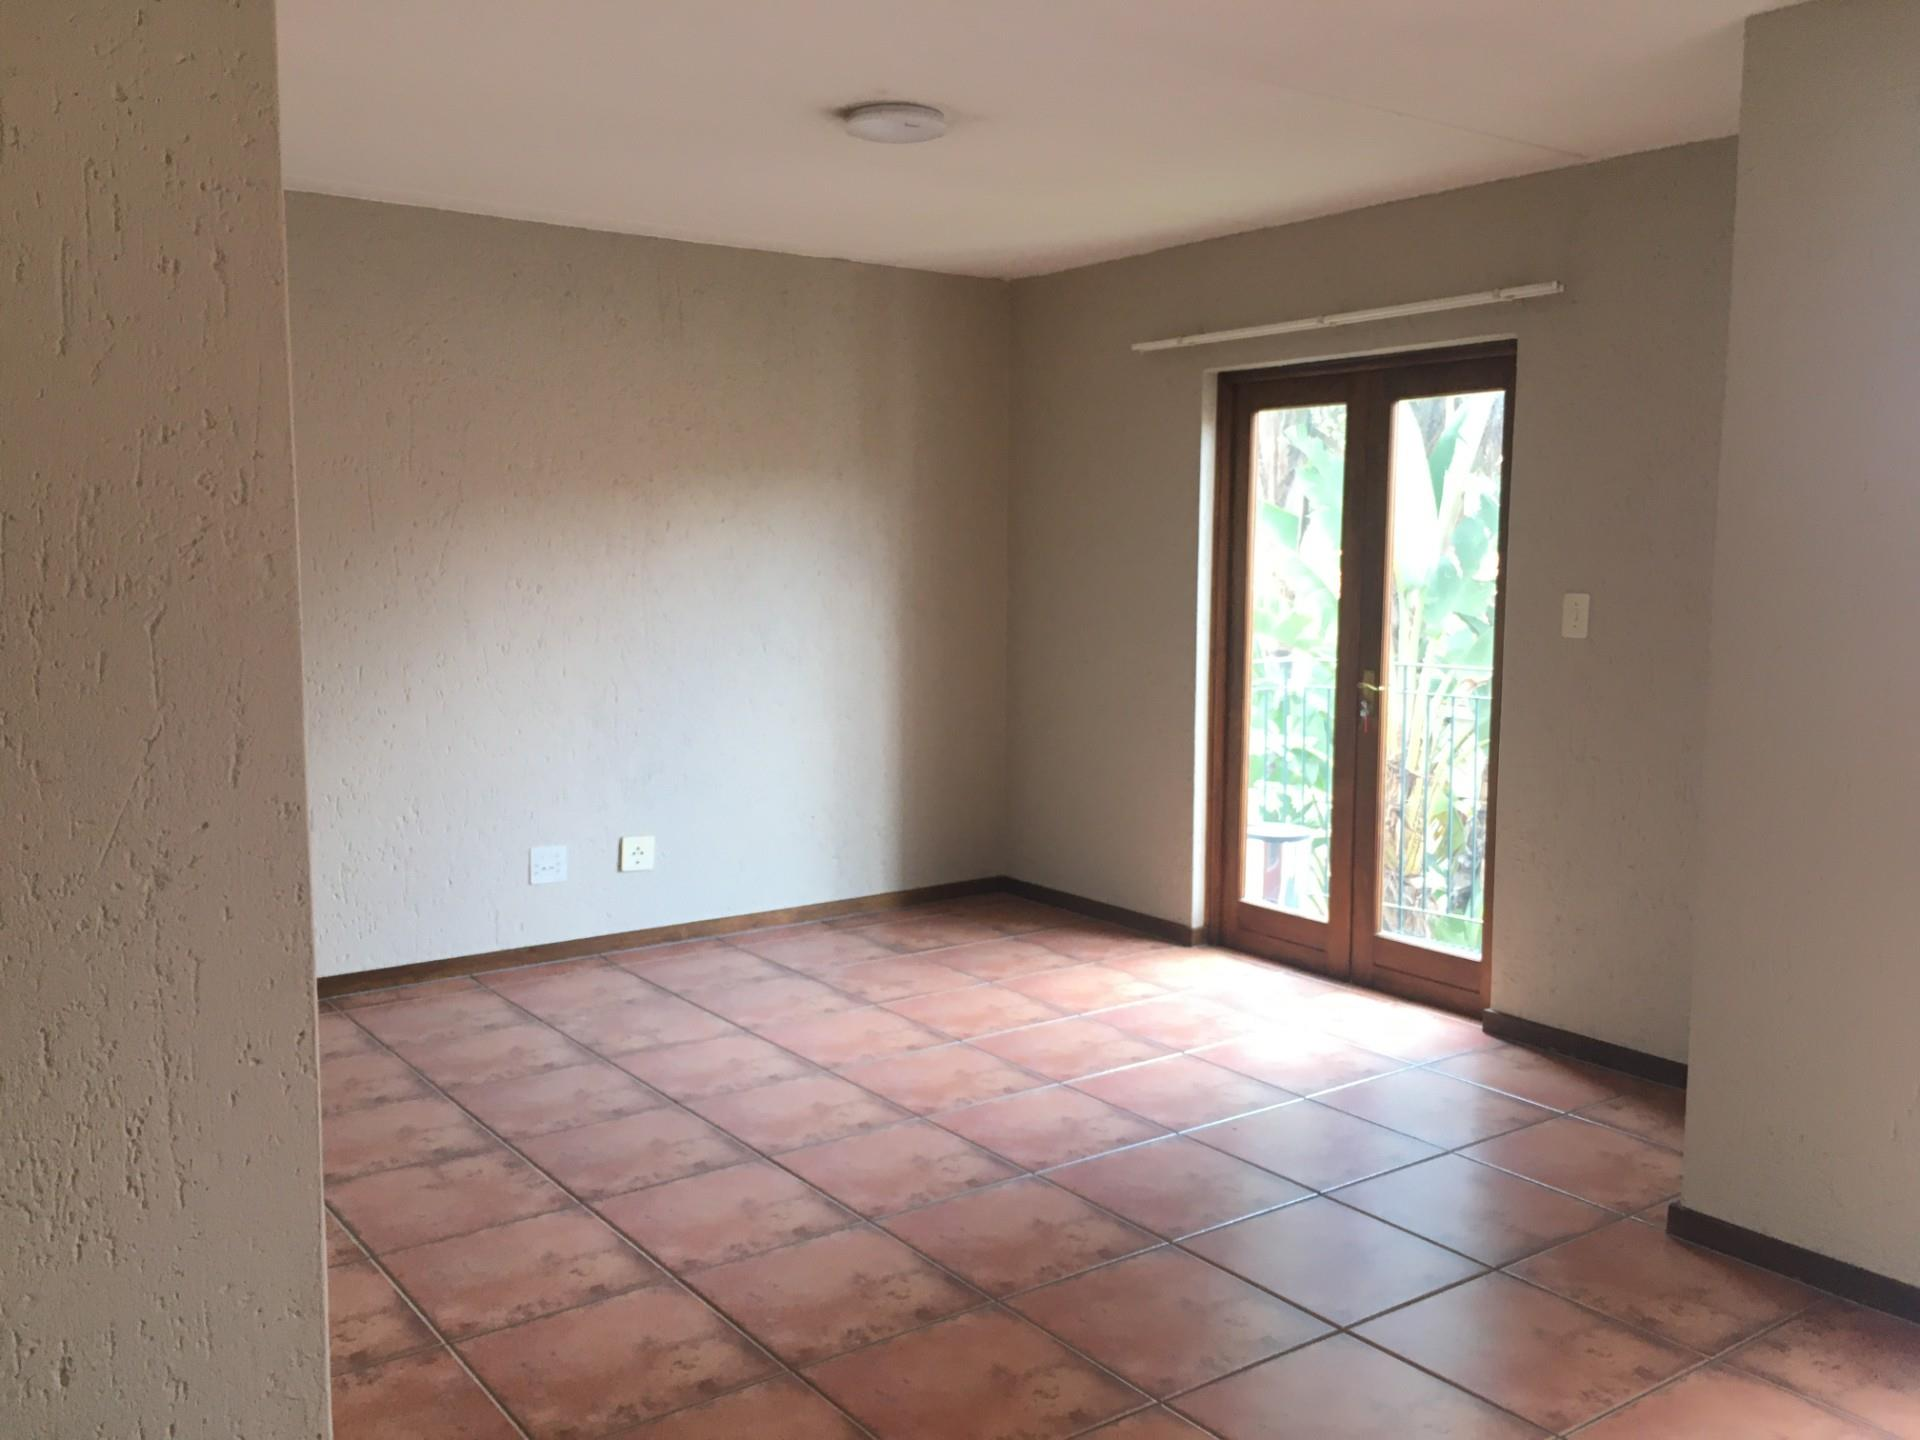 1 Bedroom Apartment / Flat To Rent in Sunninghill